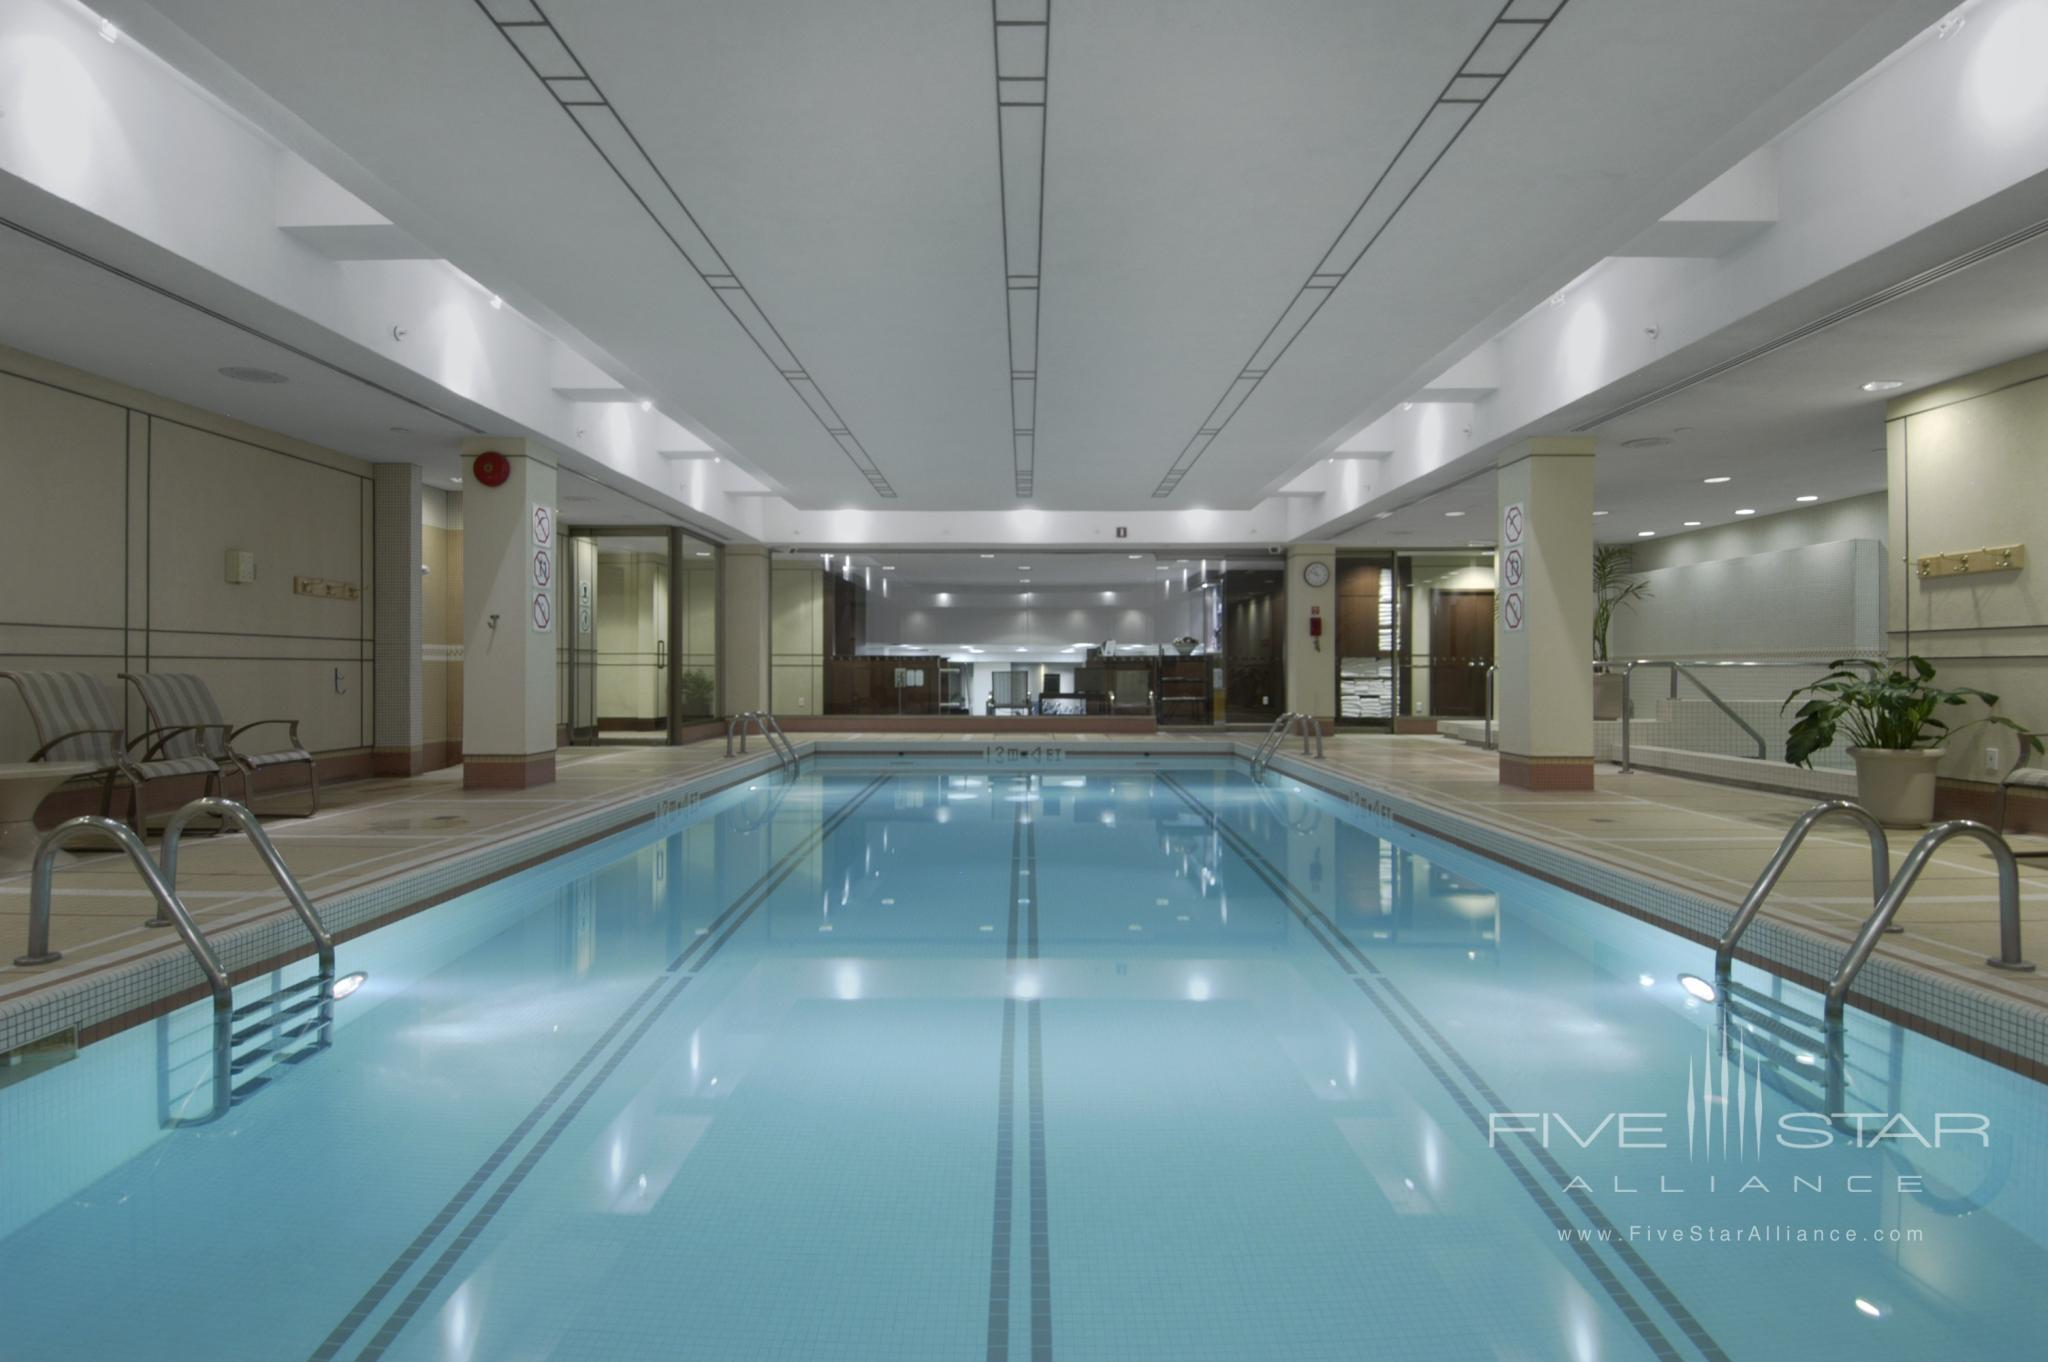 Photo Gallery For Fairmont The Queen Elizabeth In Montreal Five Star Alliance